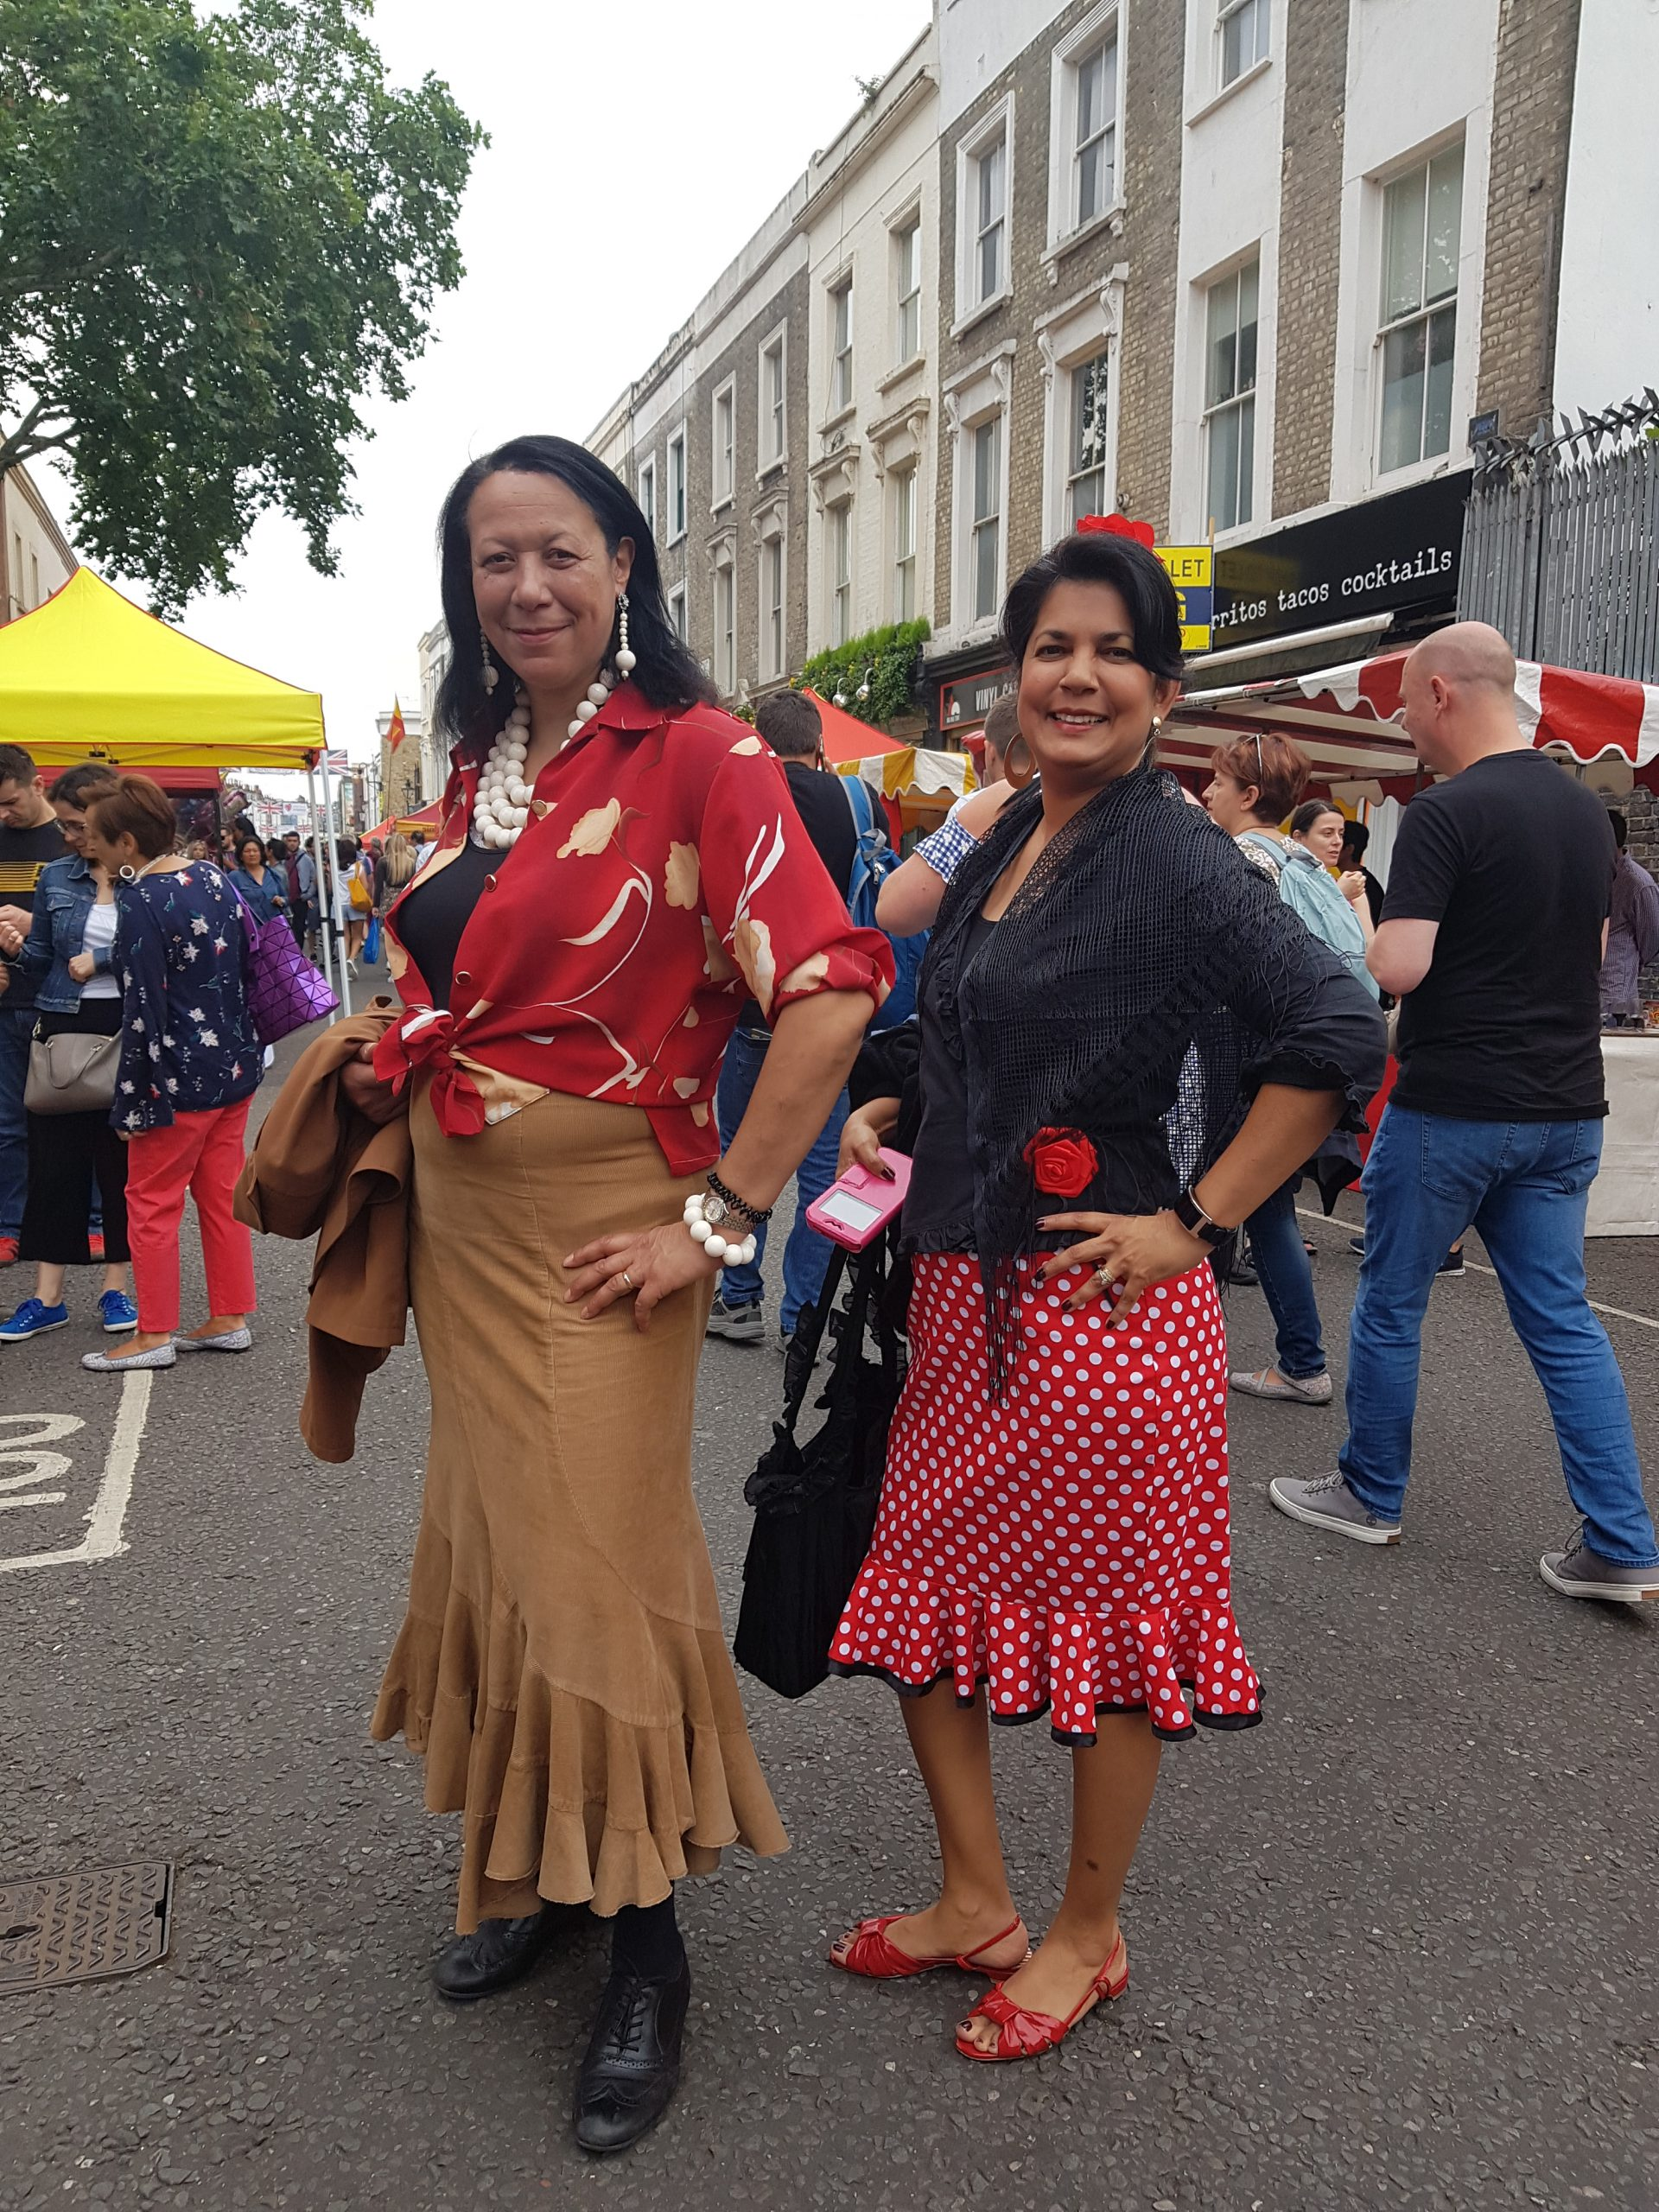 Get dressed up for the Portobello and Manchester Spanish Festivals 2020